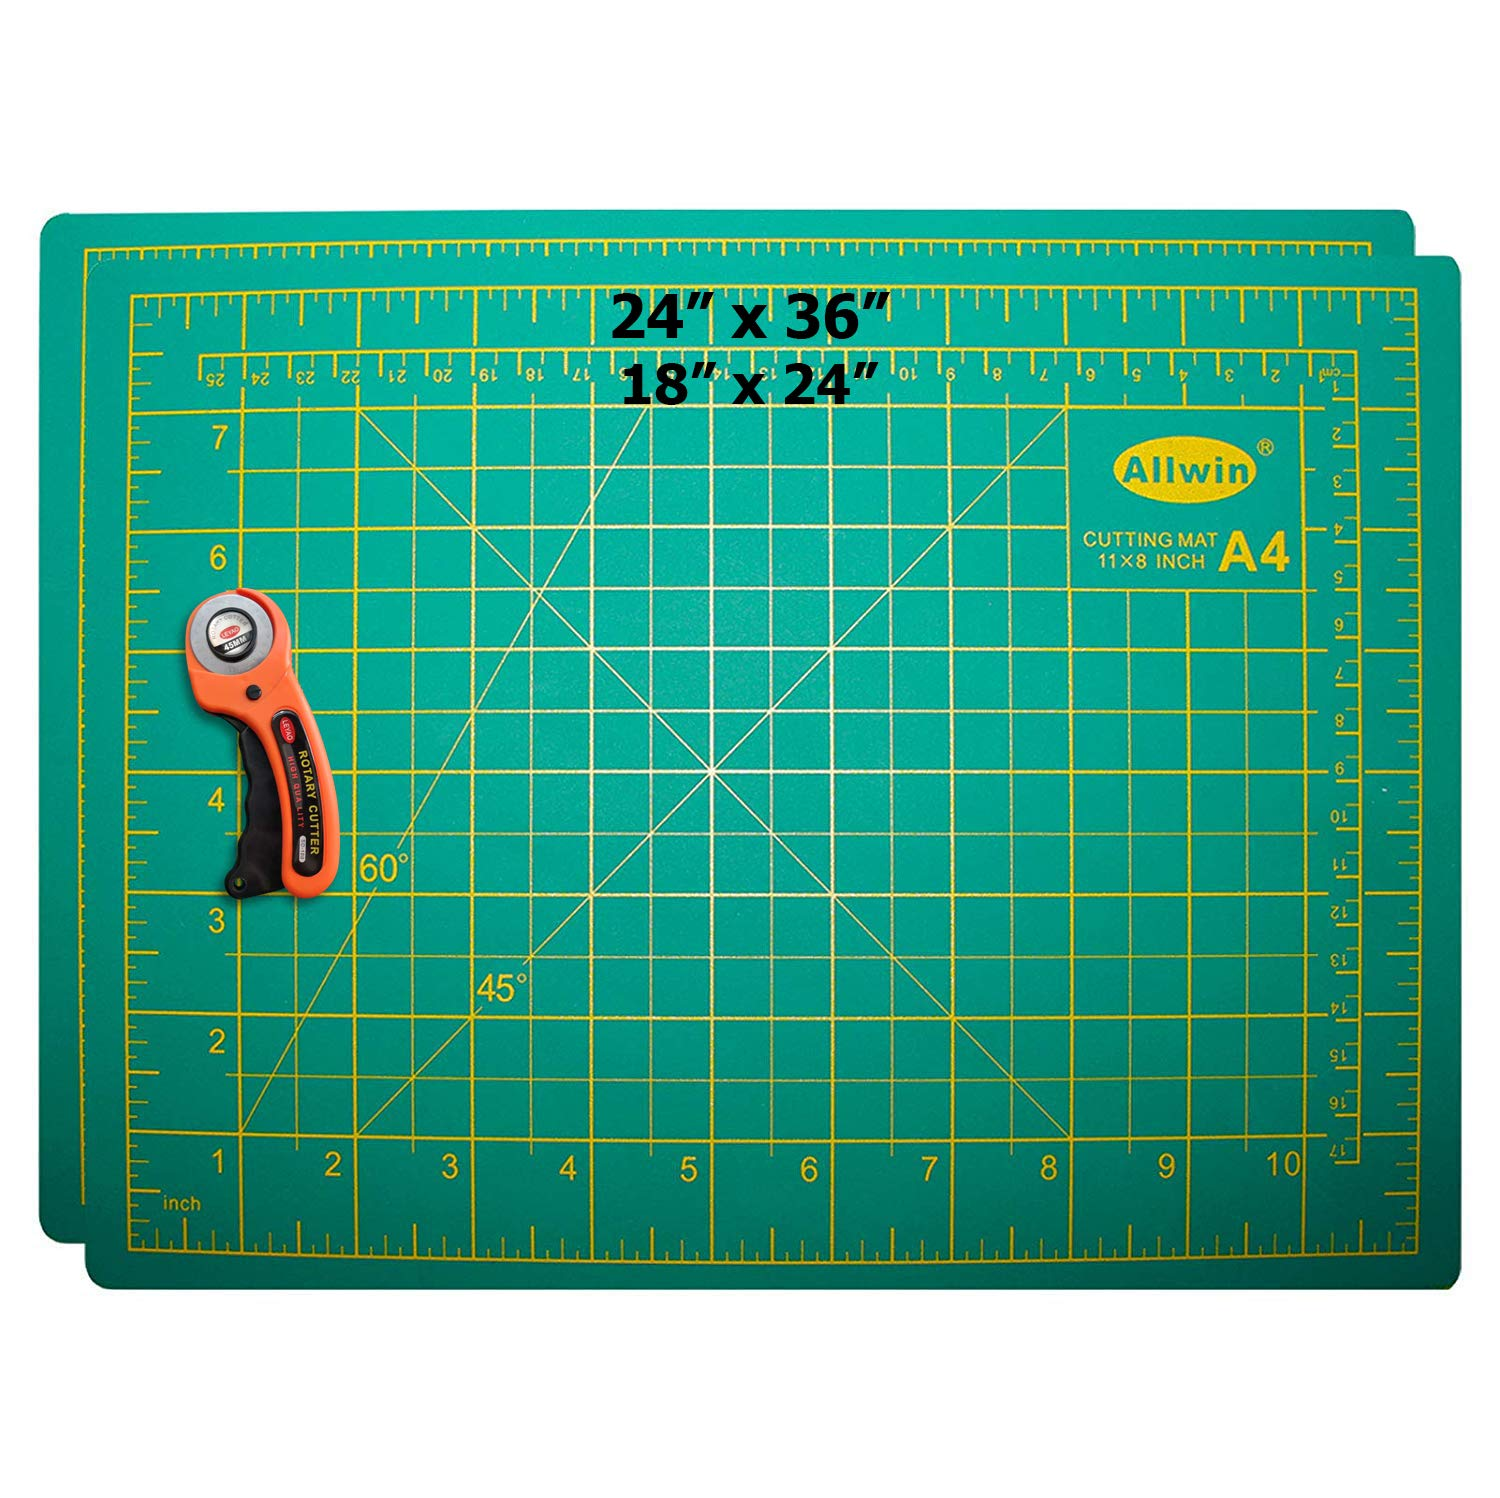 Zoraa Self-Healing Cutting Mats w/Rotary Cutter (3-Piece Set) Small(18''x24'') and Large(24''x36'') Grid Pads for Vinyl, Paper, Cardstock, Fabric   Art, Hobby, and DIY Projects   Rotating Style